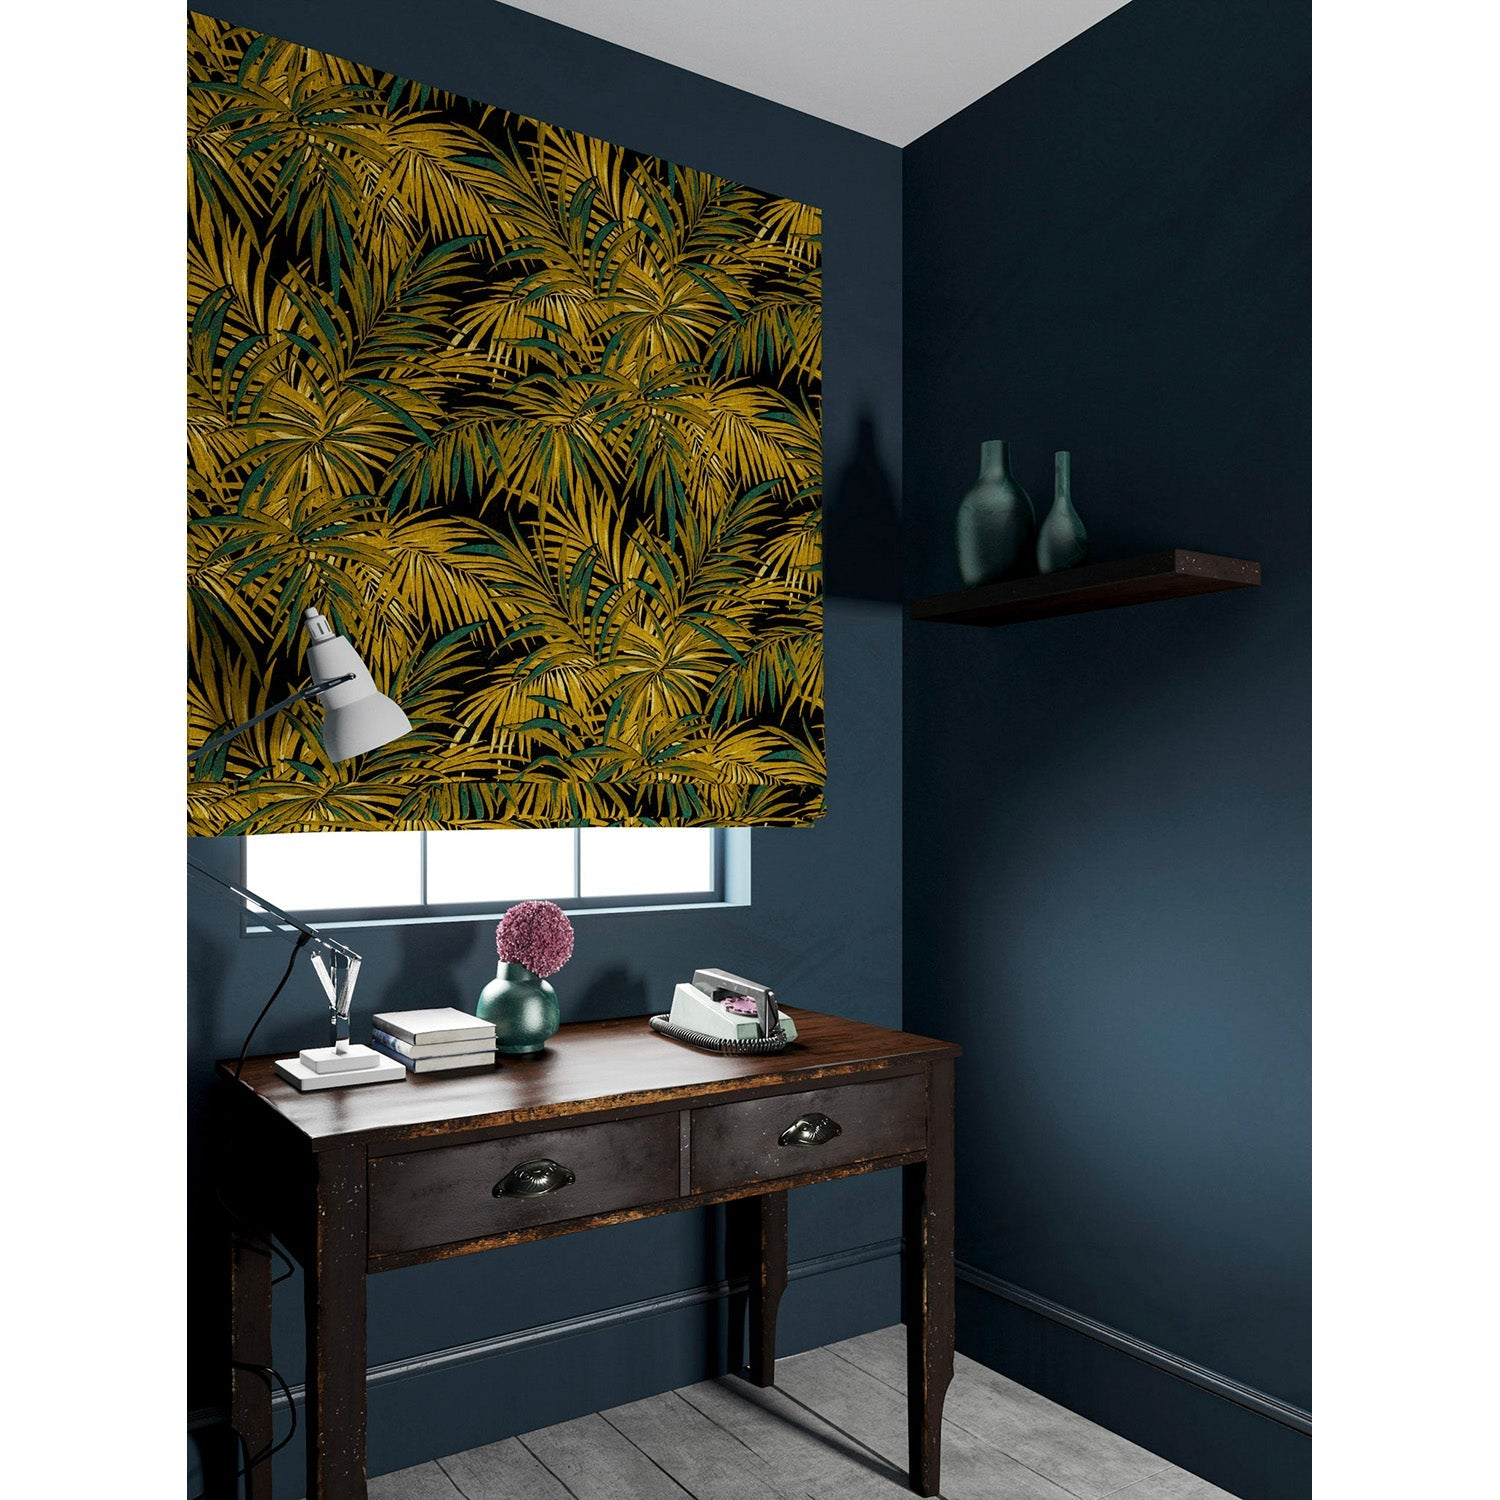 Velvet blind in a gold and teal coloured velvet fabric with stain resistant finish and palm tree leaf design